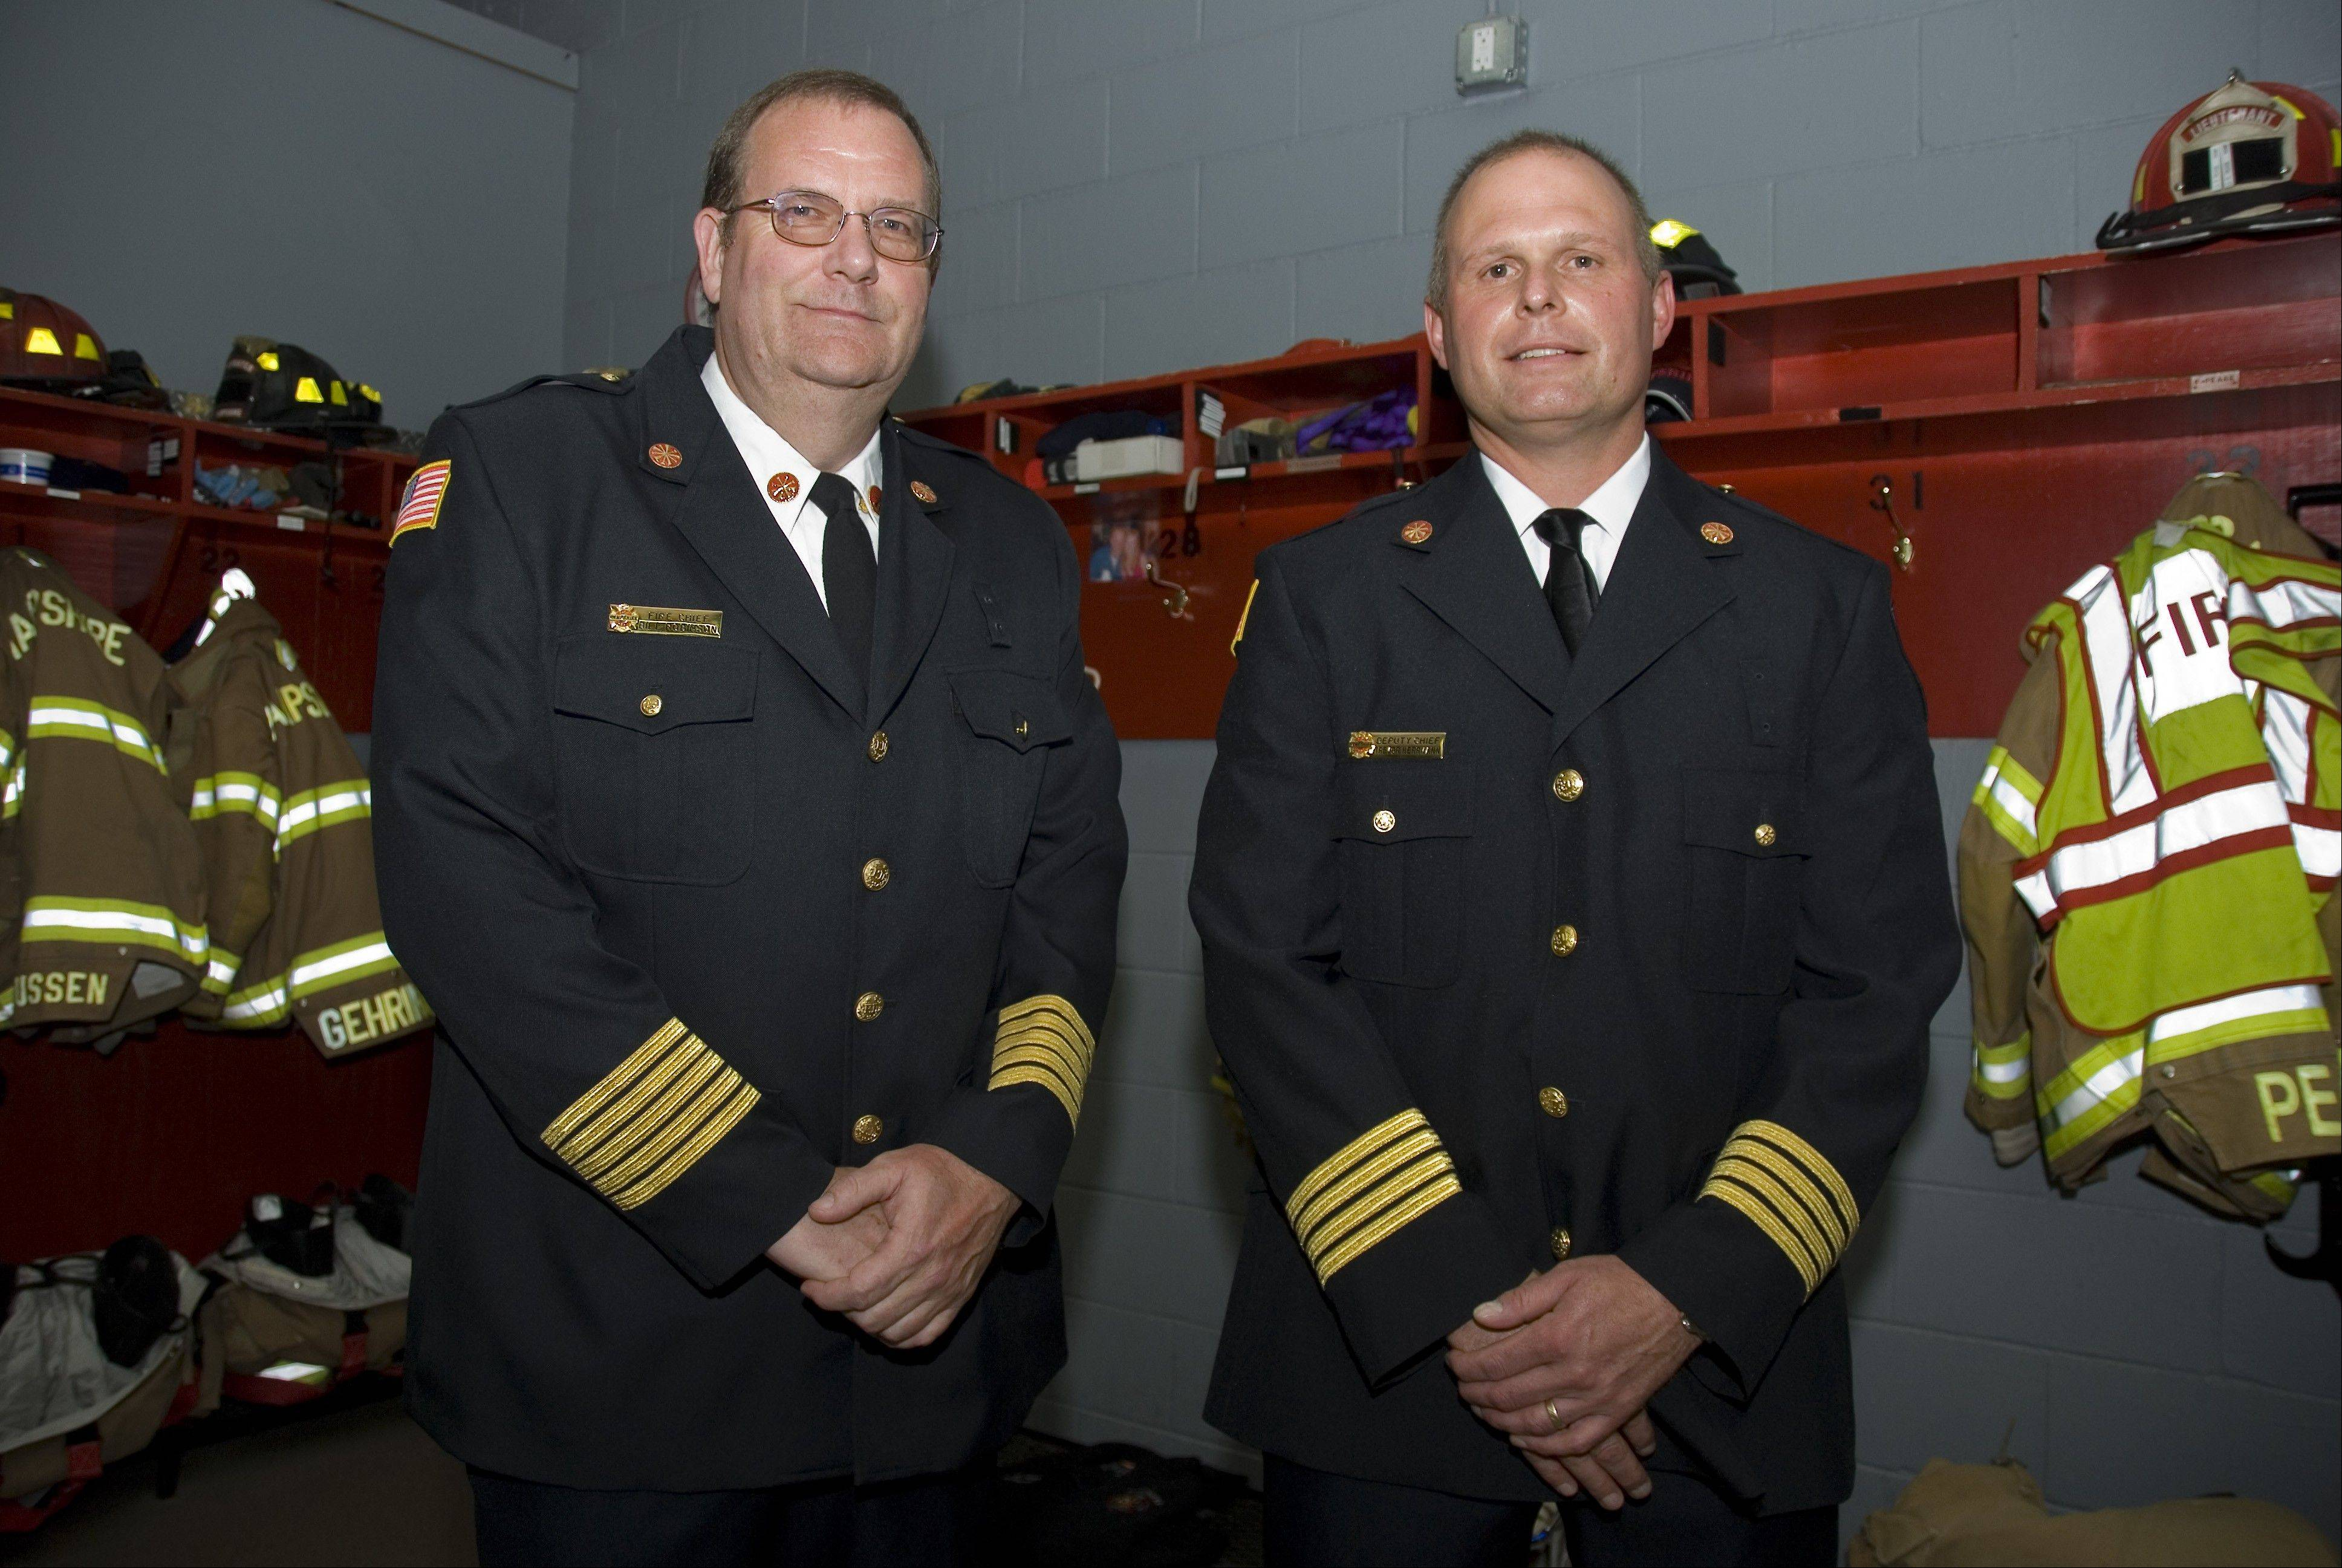 Bill Robinson, left, is the new chief and Trevor Herrmann is the new deputy chief of the Hampshire Fire Protection District. Both men were sworn in this week.